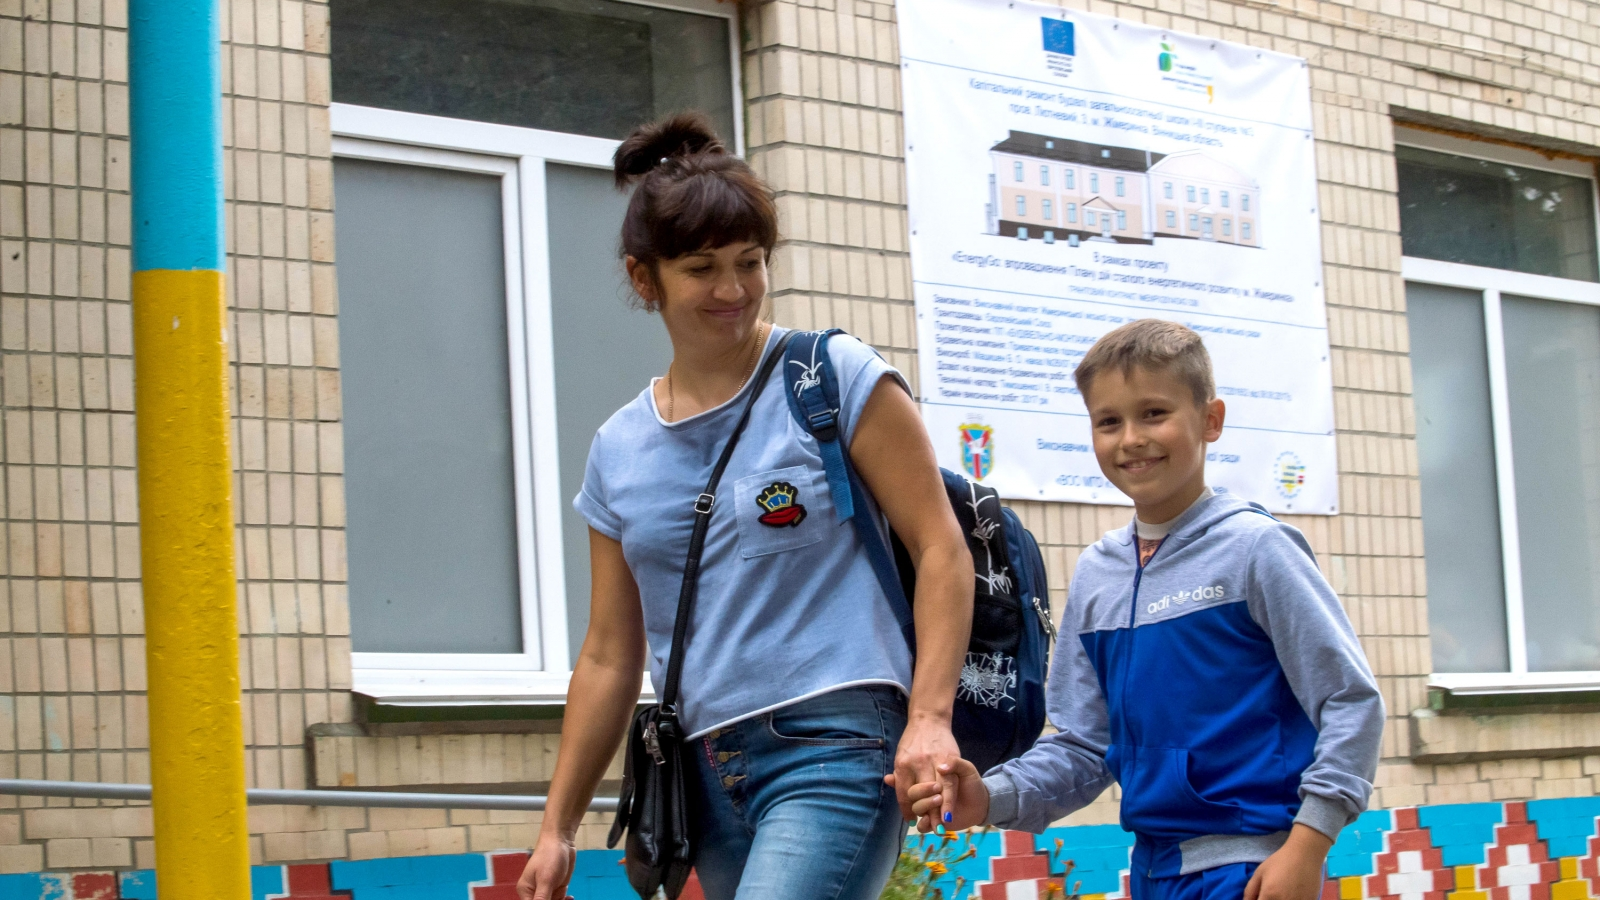 Svitlana Slyusar with her son Artem who is attending School No.3